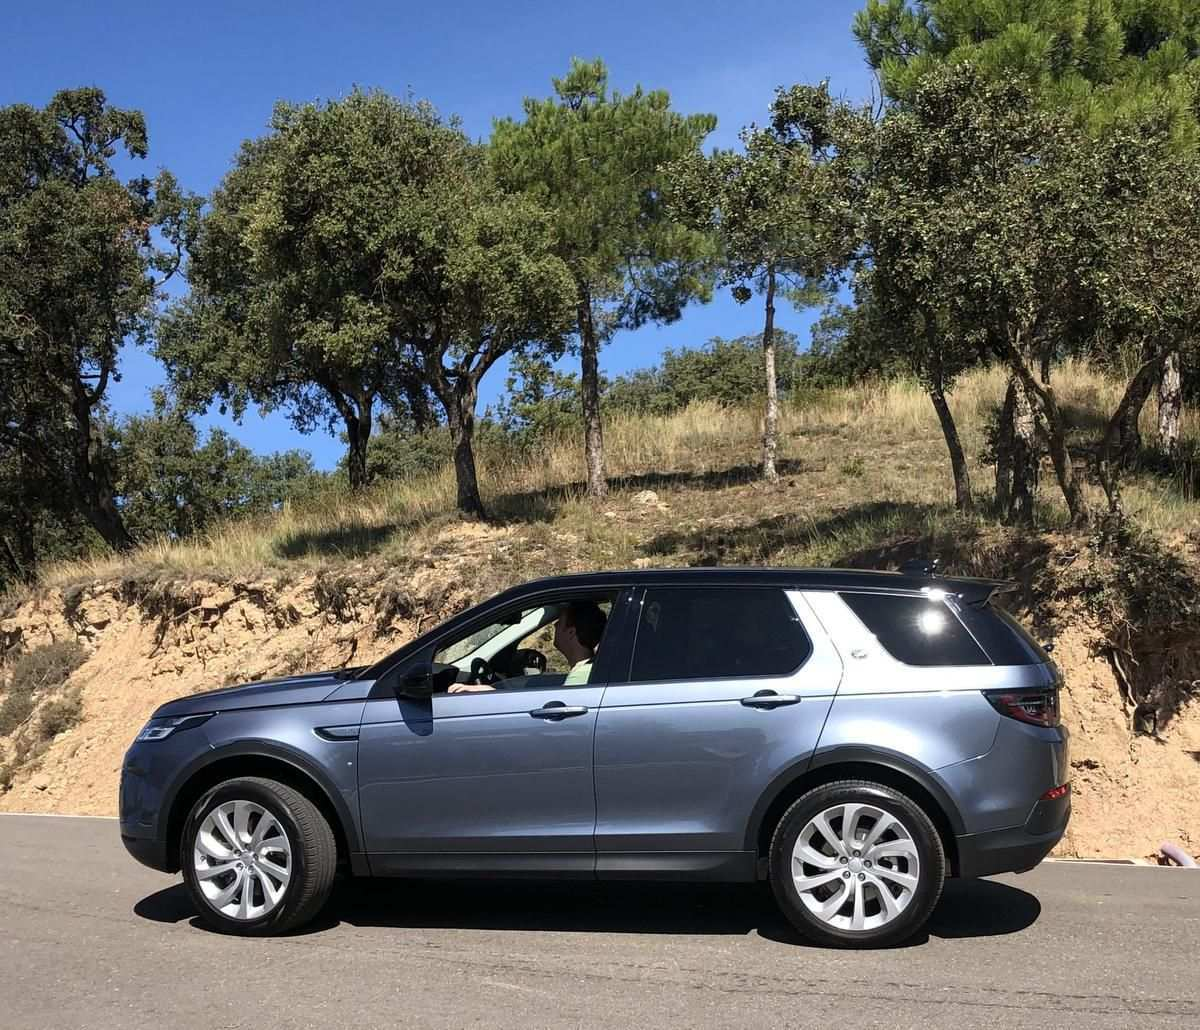 50 The Best 2020 Land Rover Discovery Sport Price And Review